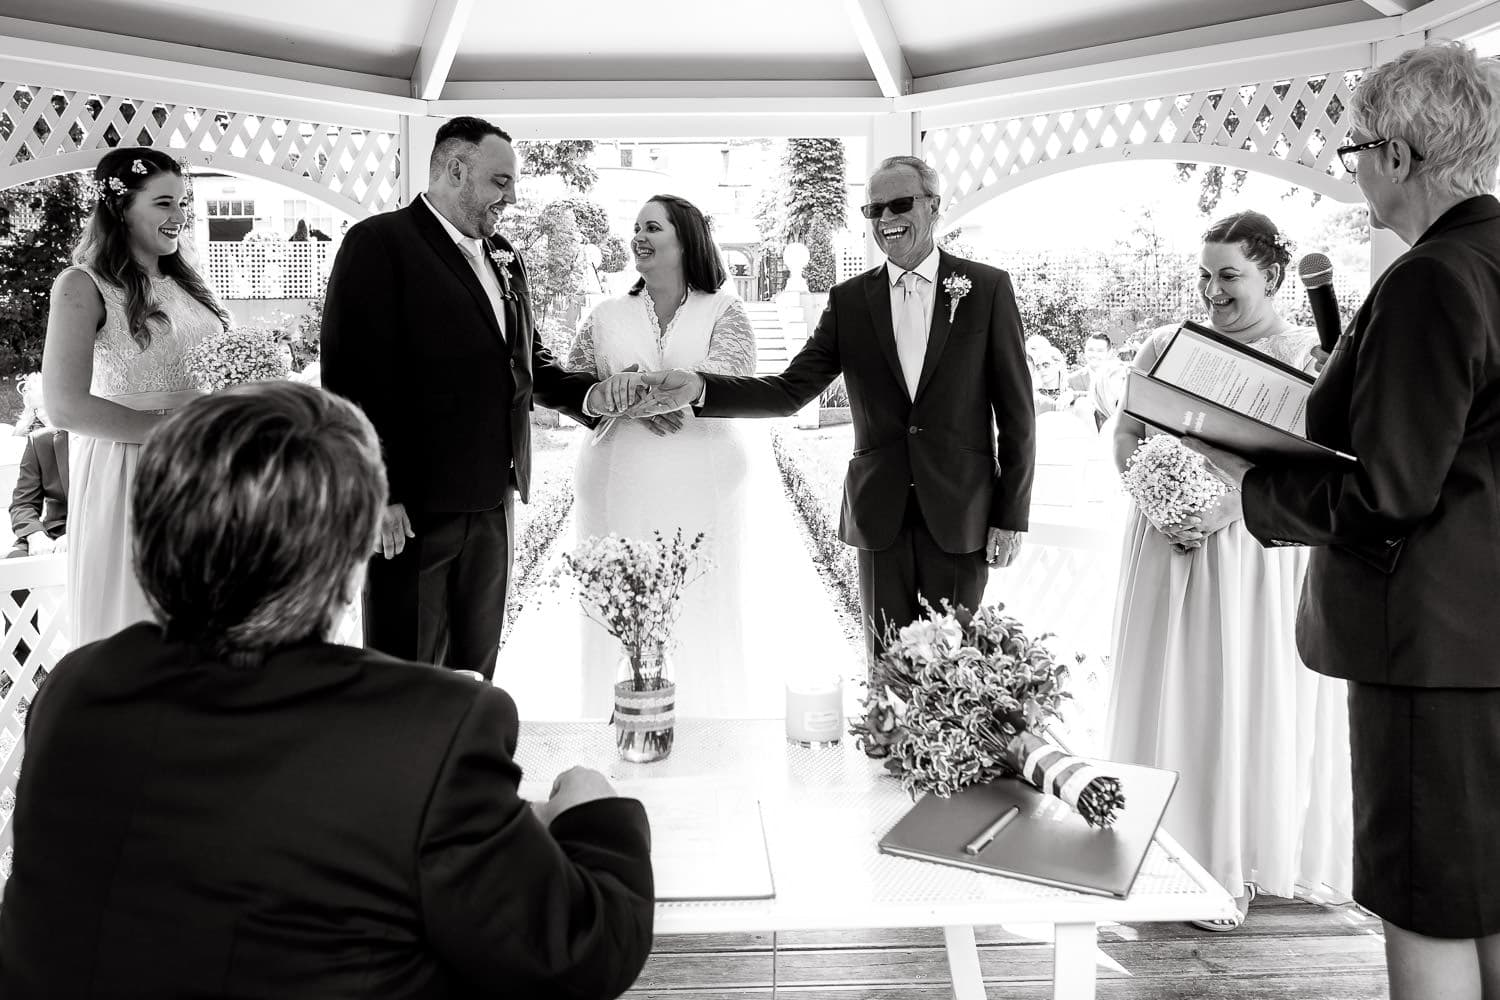 Dad hands daughters hand to groom during ceremony at warwick house wedding